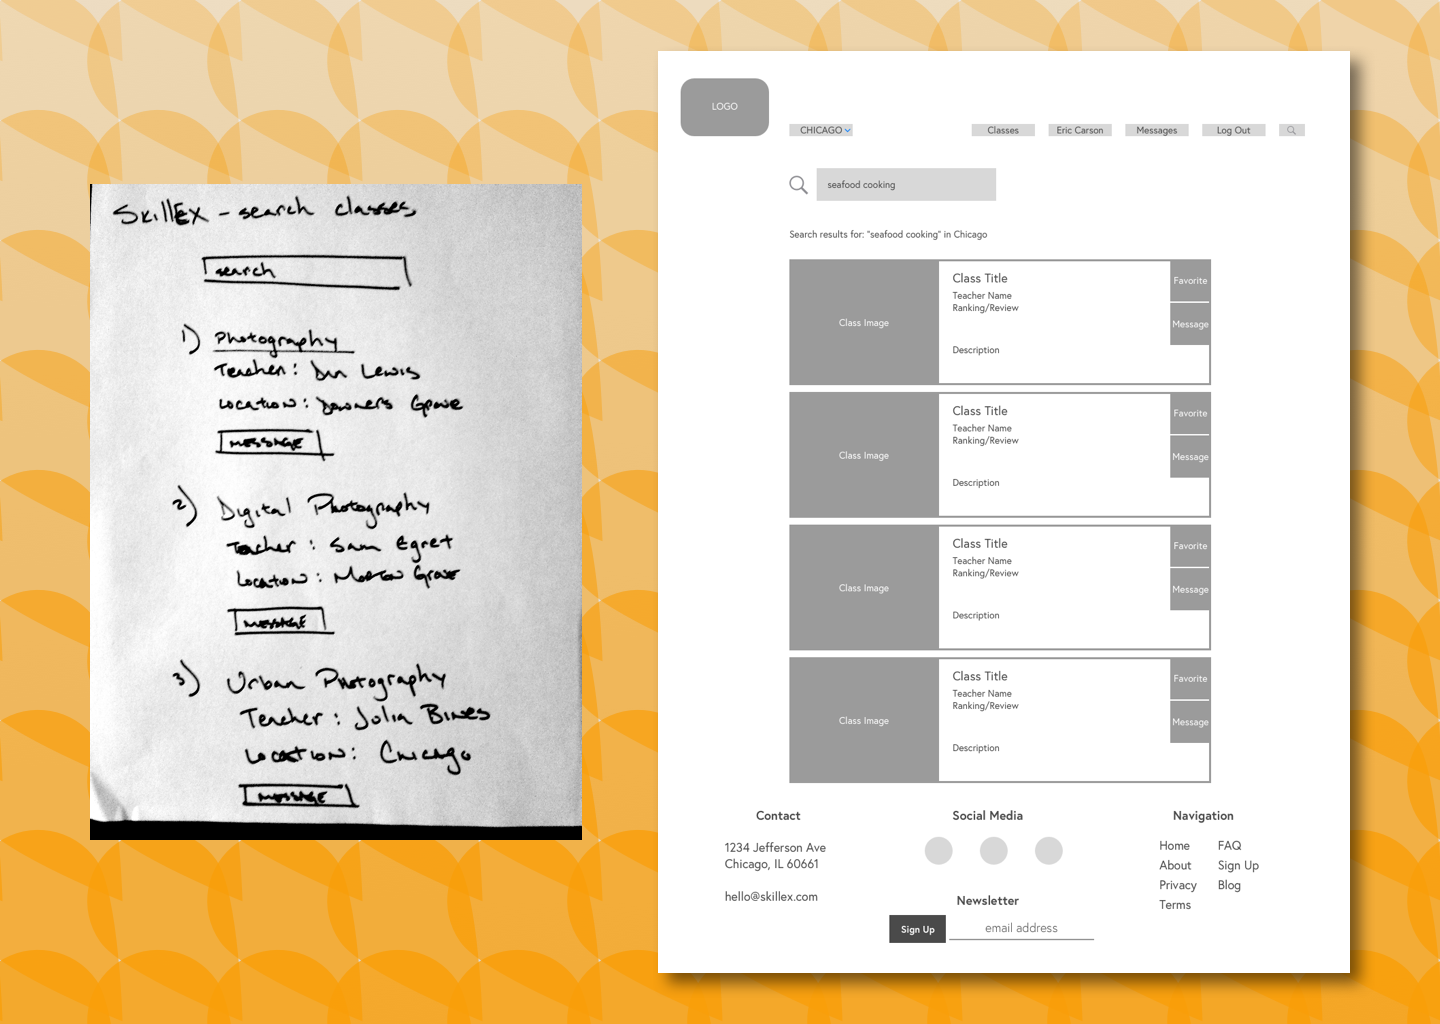 The biggest changes I wanted to implement from the wireframe sketches were to create a navigation menu, a footer, and use cards to contain and organize information.